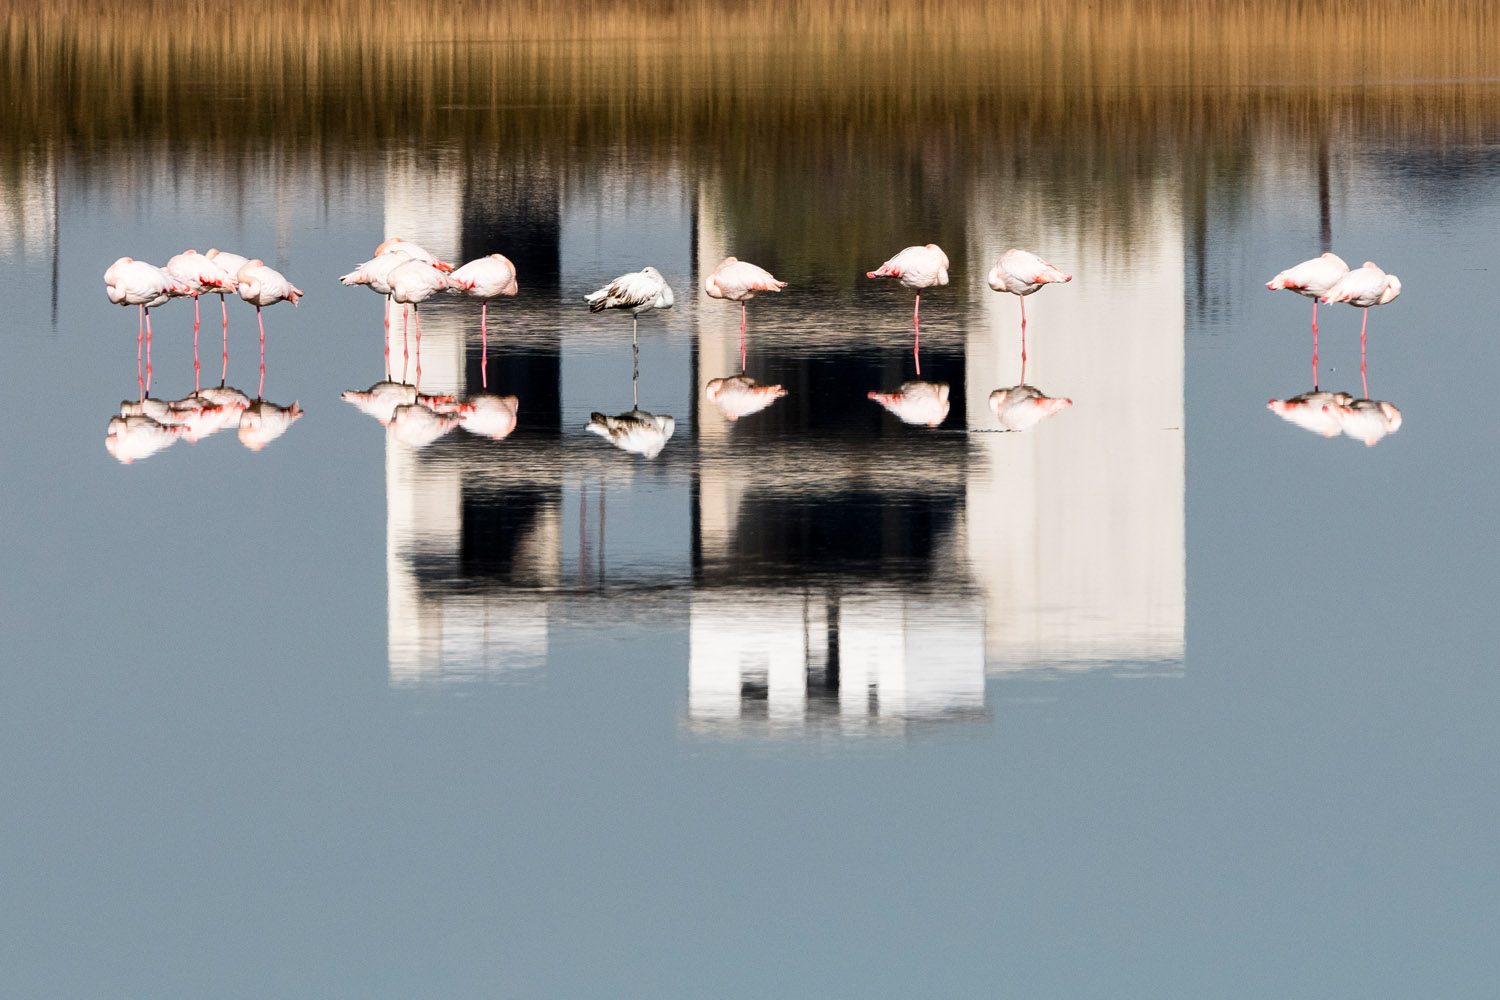 Greater flamingos sleeping in reflection of building, Axios Delta National Park, Thessaloniki, Greece